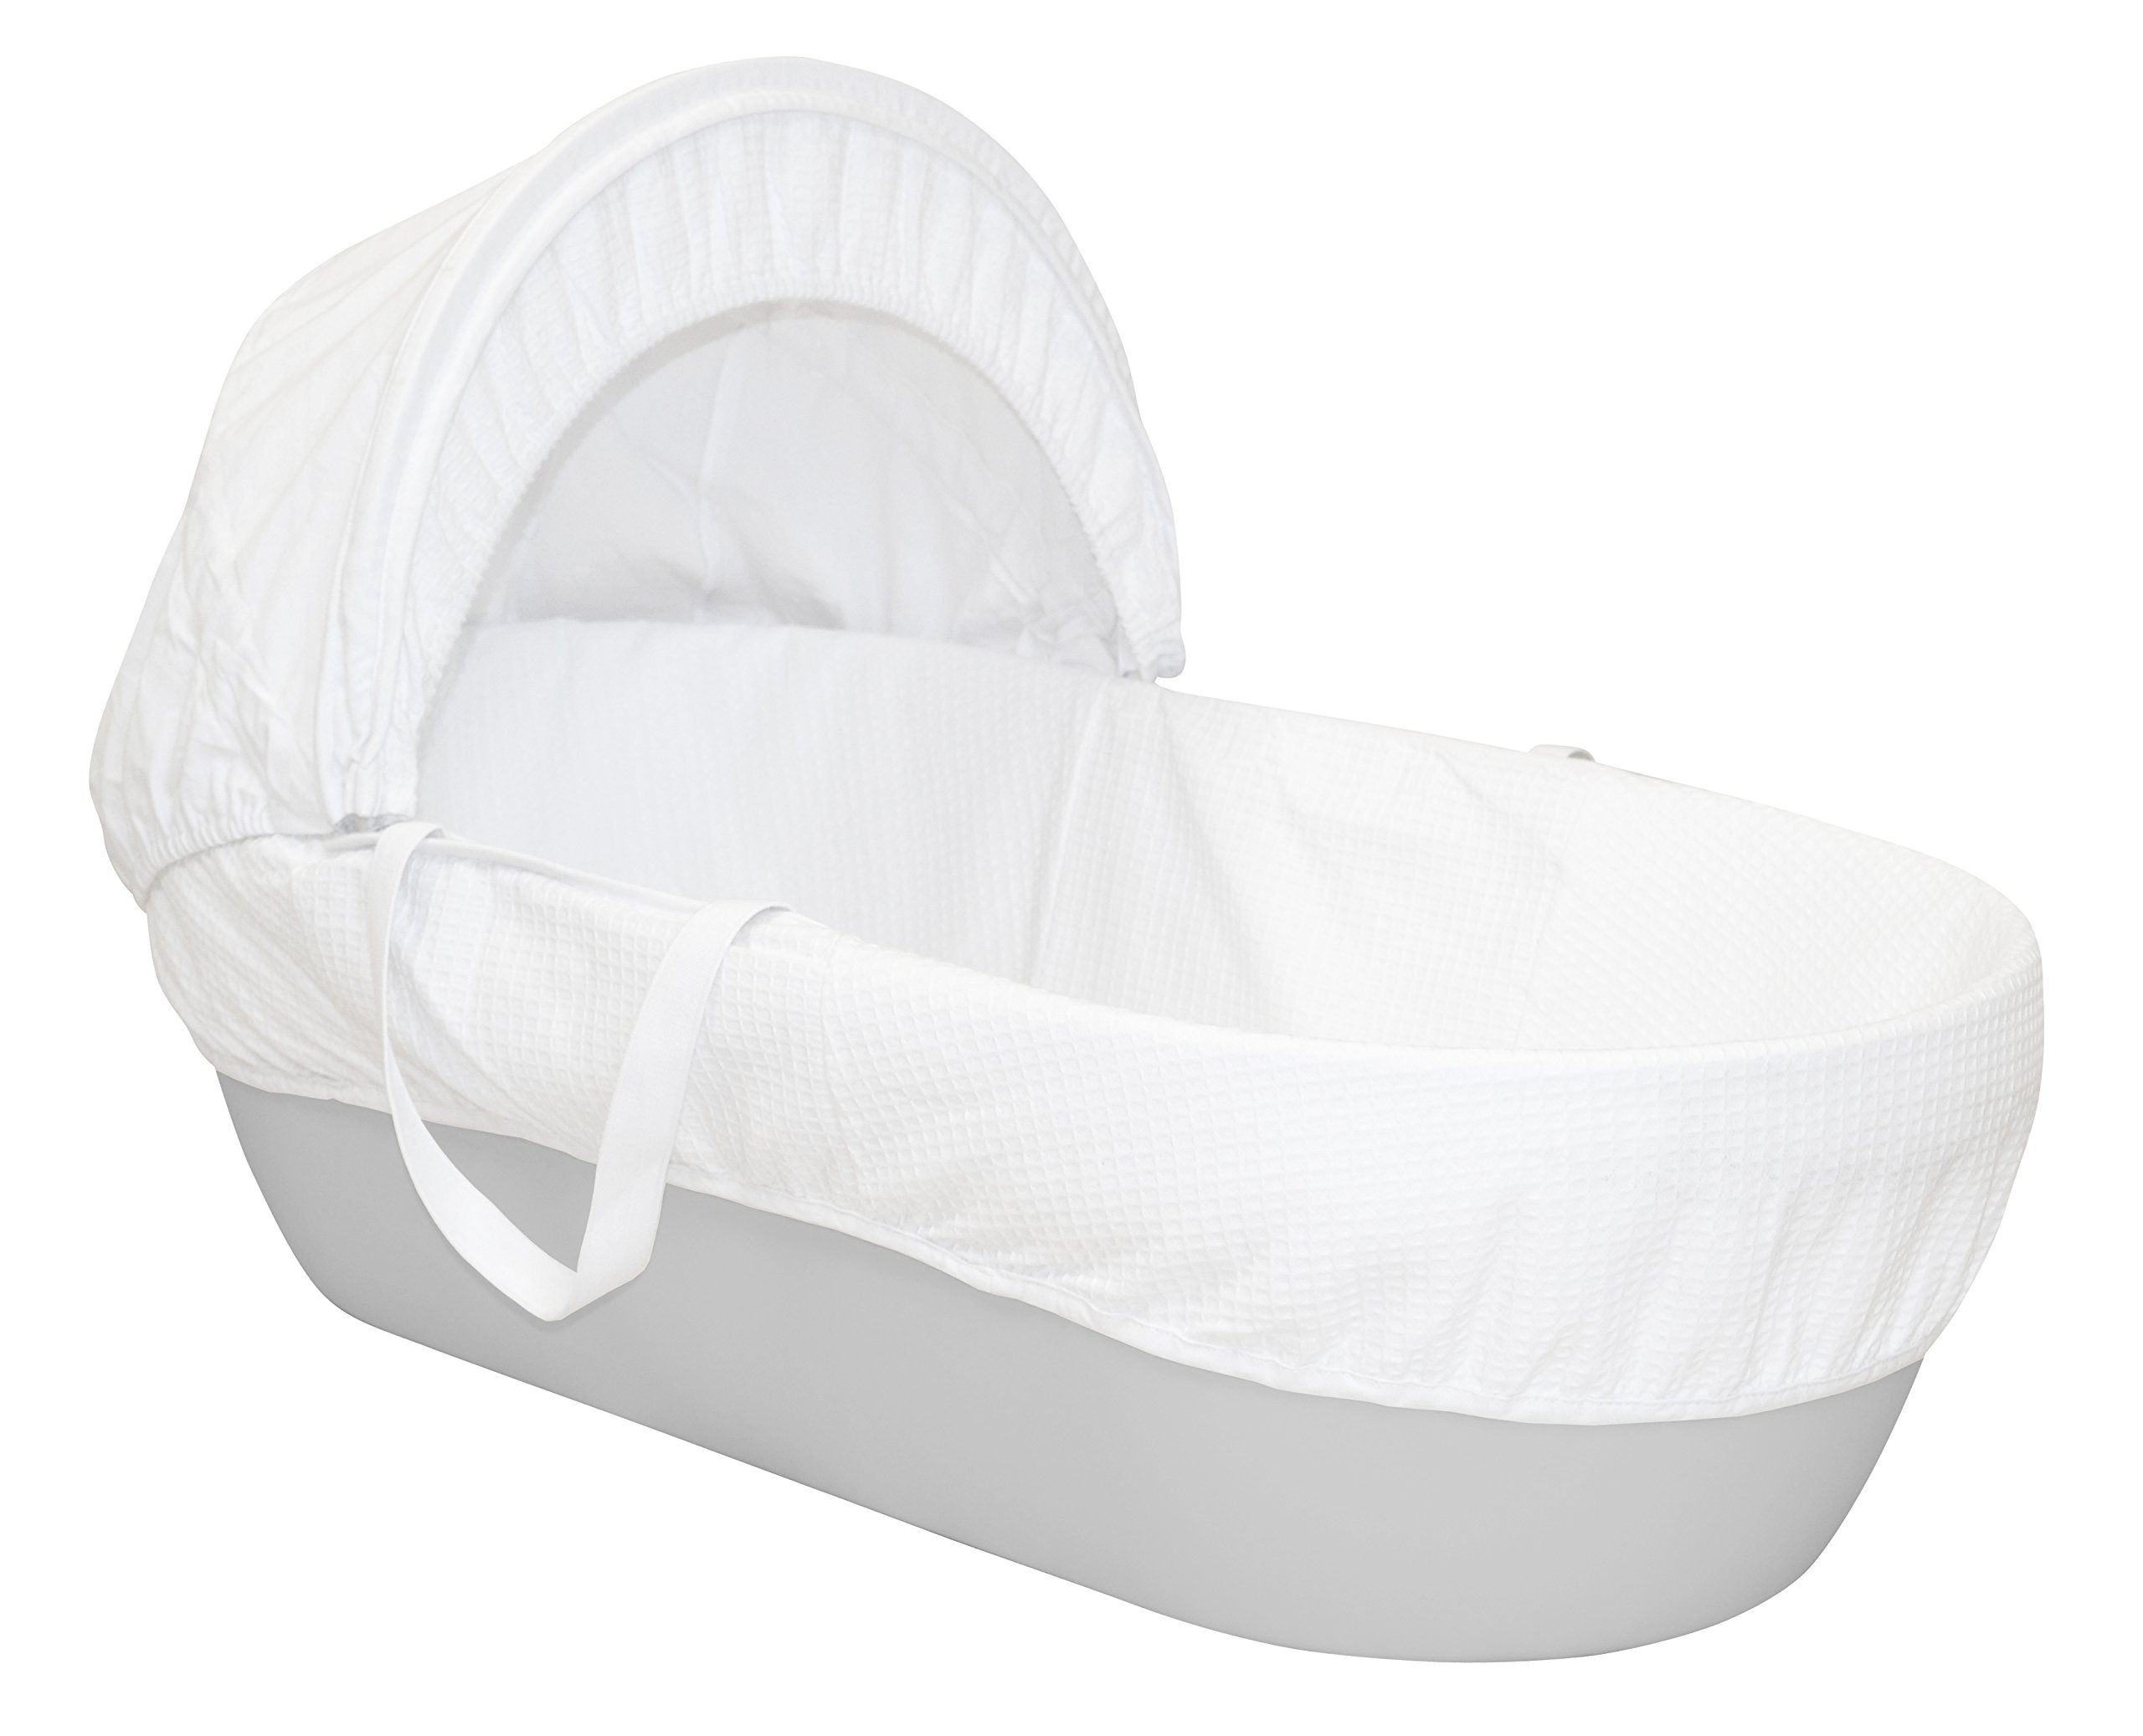 Shnuggle Moses Basket with White Waffle Cotton Dressing, Hood and Mattress - Pebble Grey Basket  Shnuggle Modern Moses Basket with stay up hood Hypoallergenic and easy to clean Super strong and long lasting 1